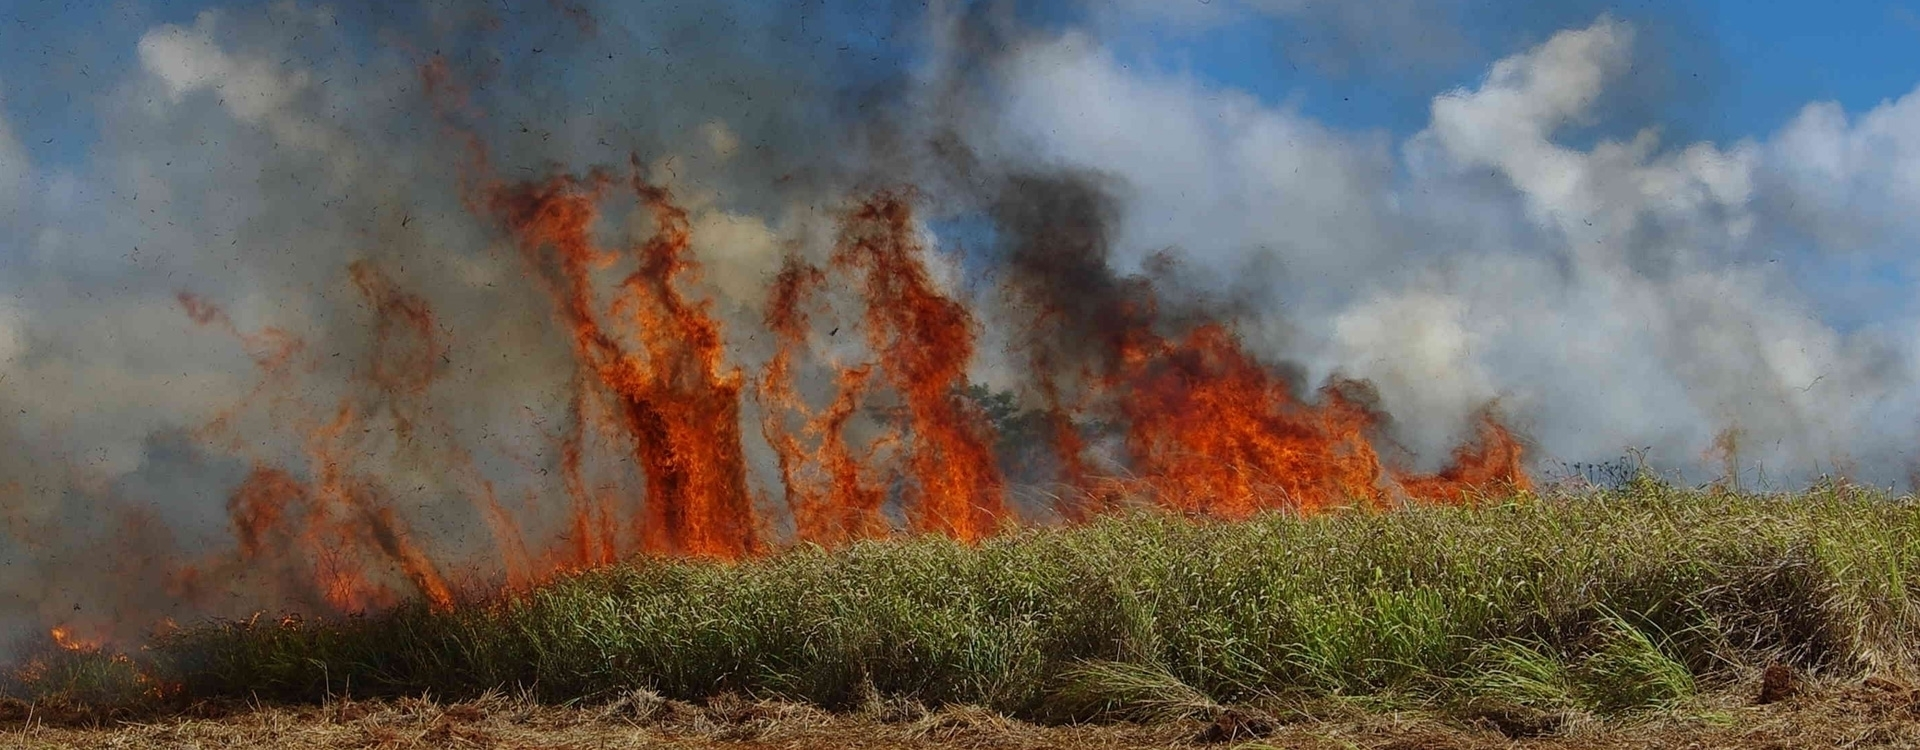 Wild fire, grasses in flames